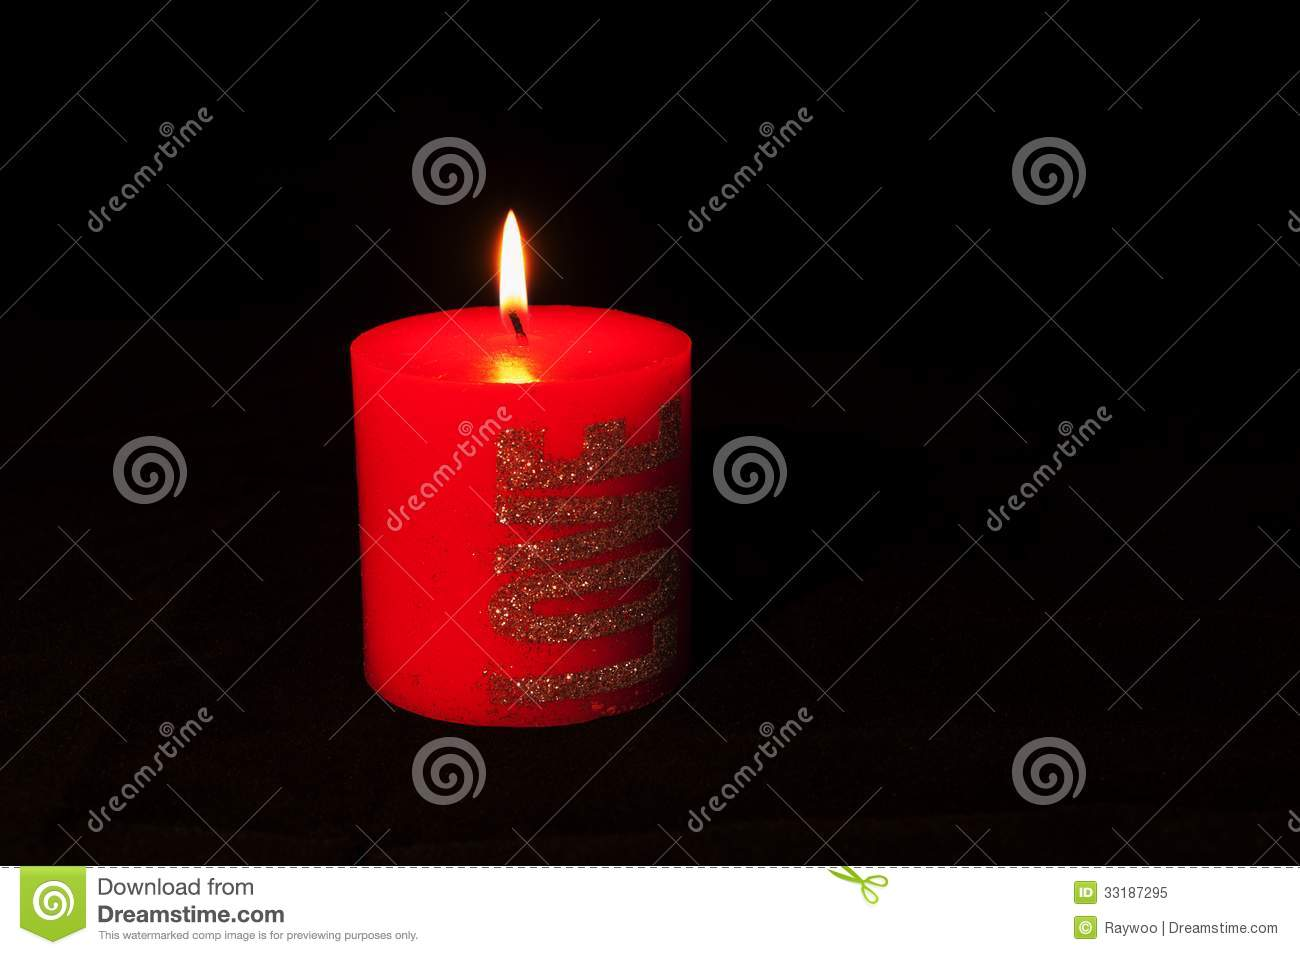 Red Candle Royalty Free Stock Photo - Image: 33187295